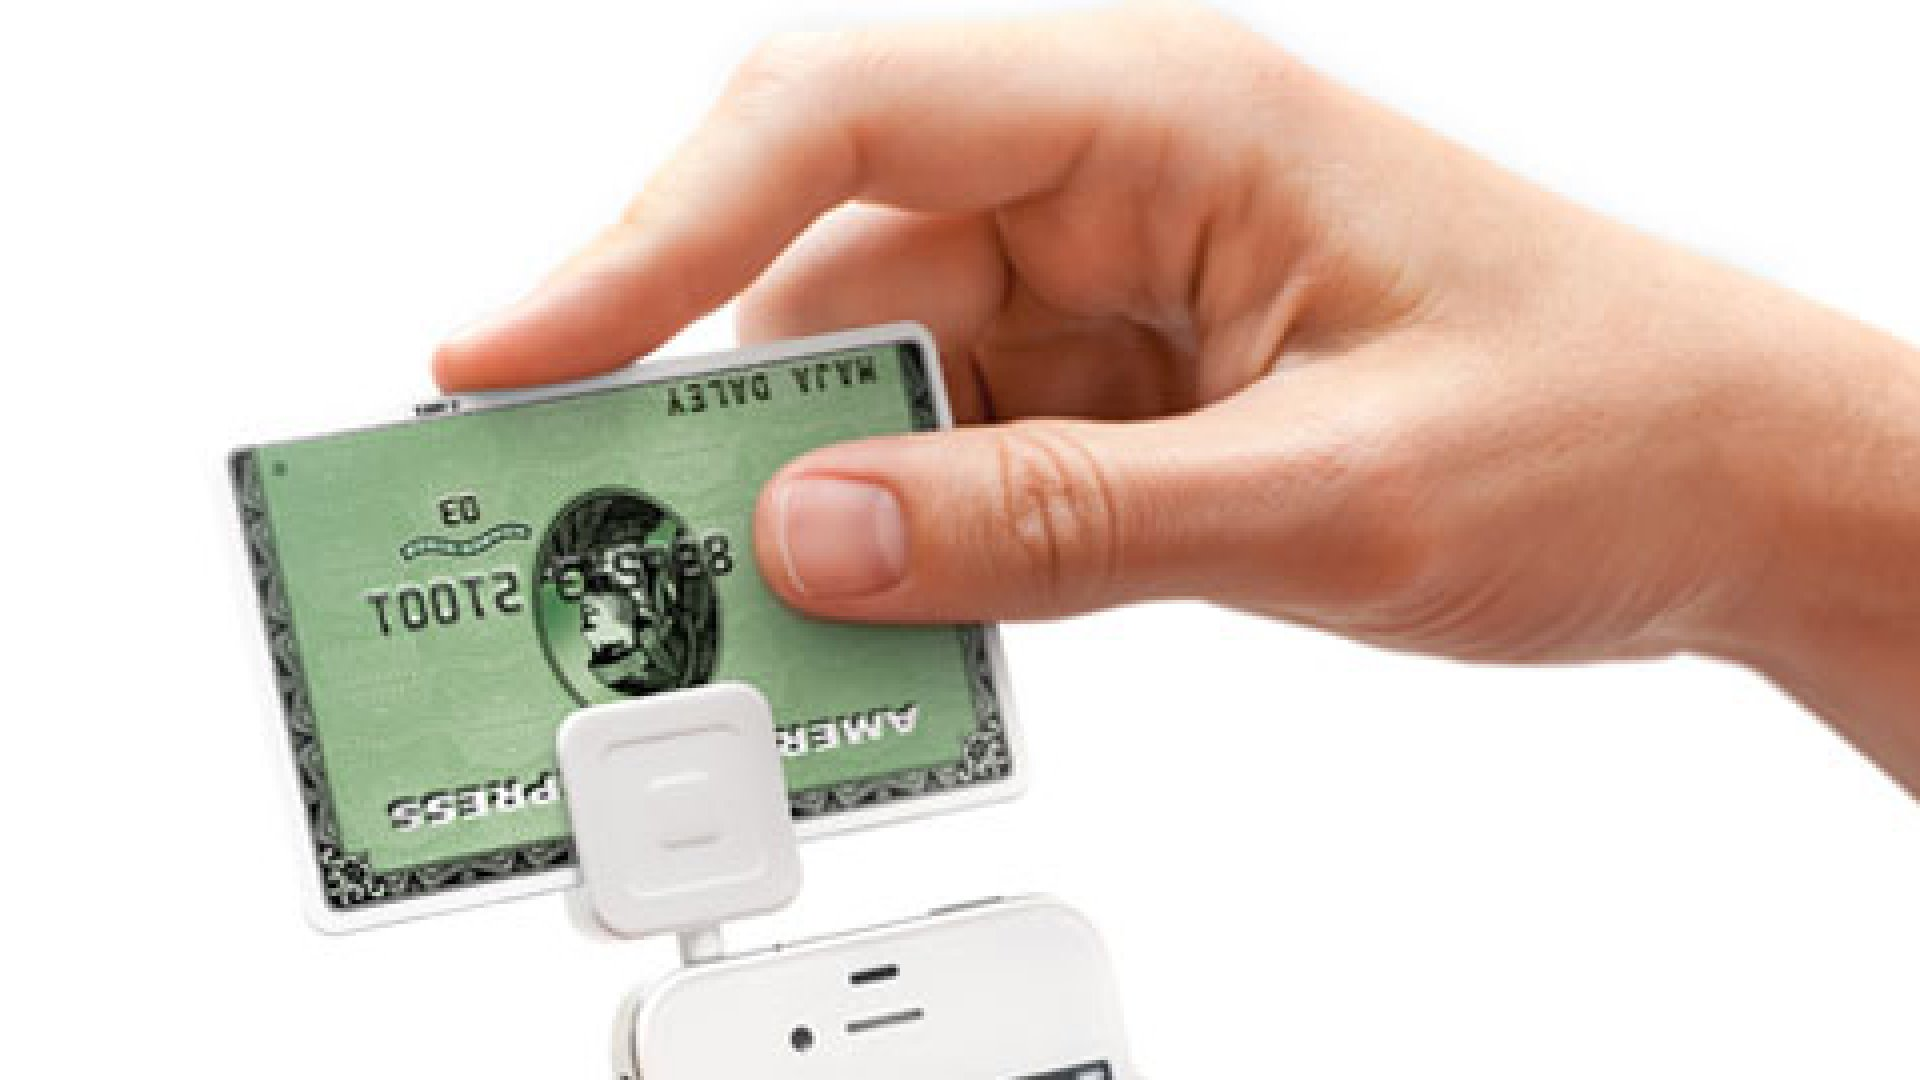 Square to Alleged Copycat: Back Off